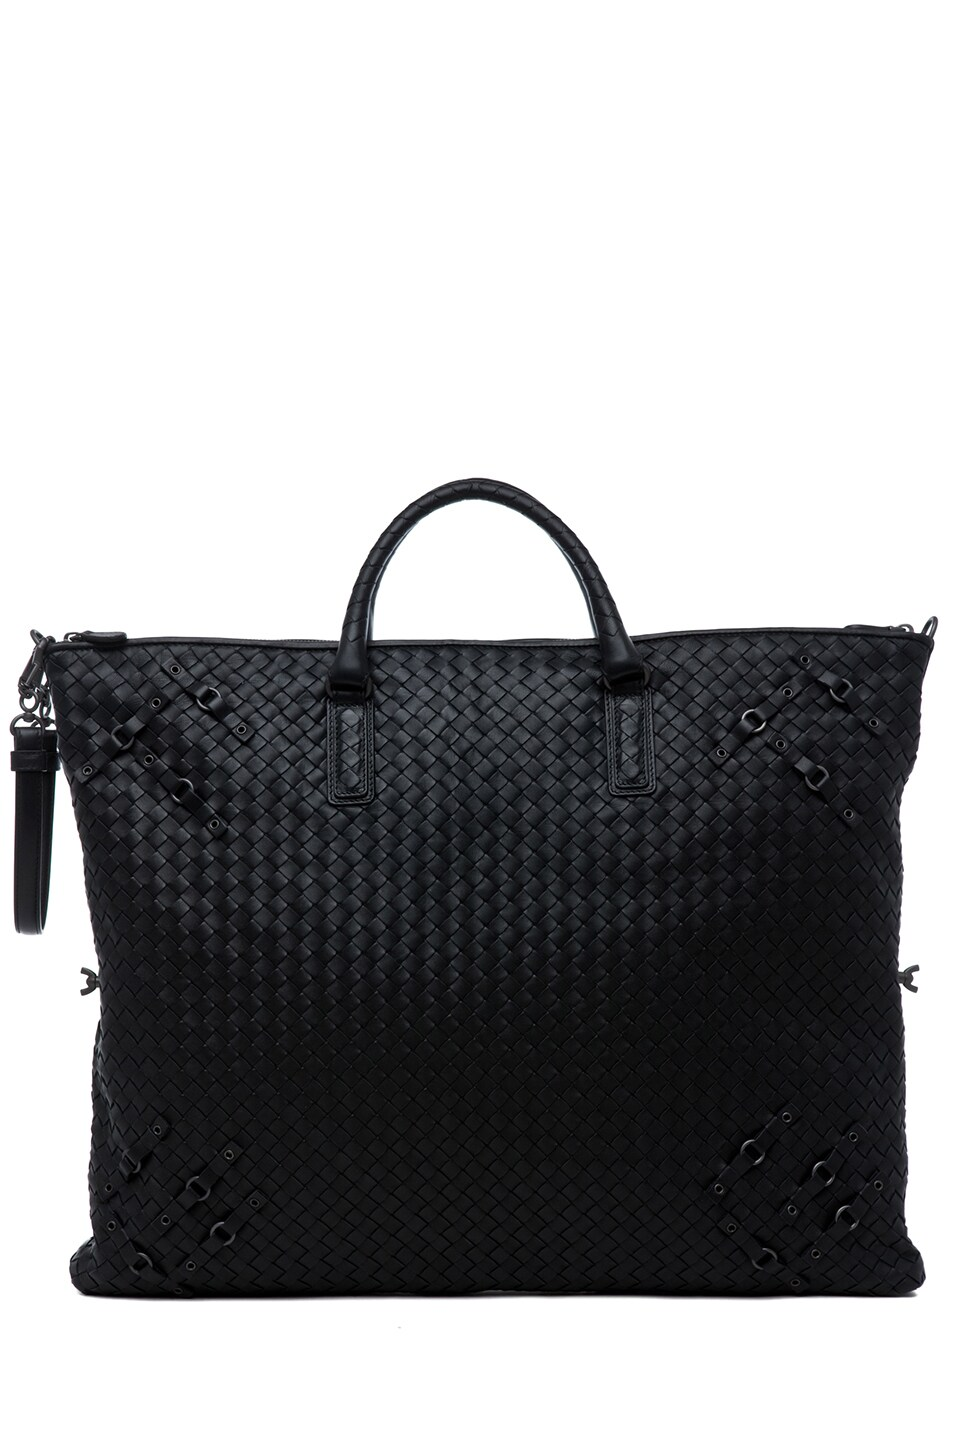 Image 5 of Bottega Veneta Maxi Tote in Nero